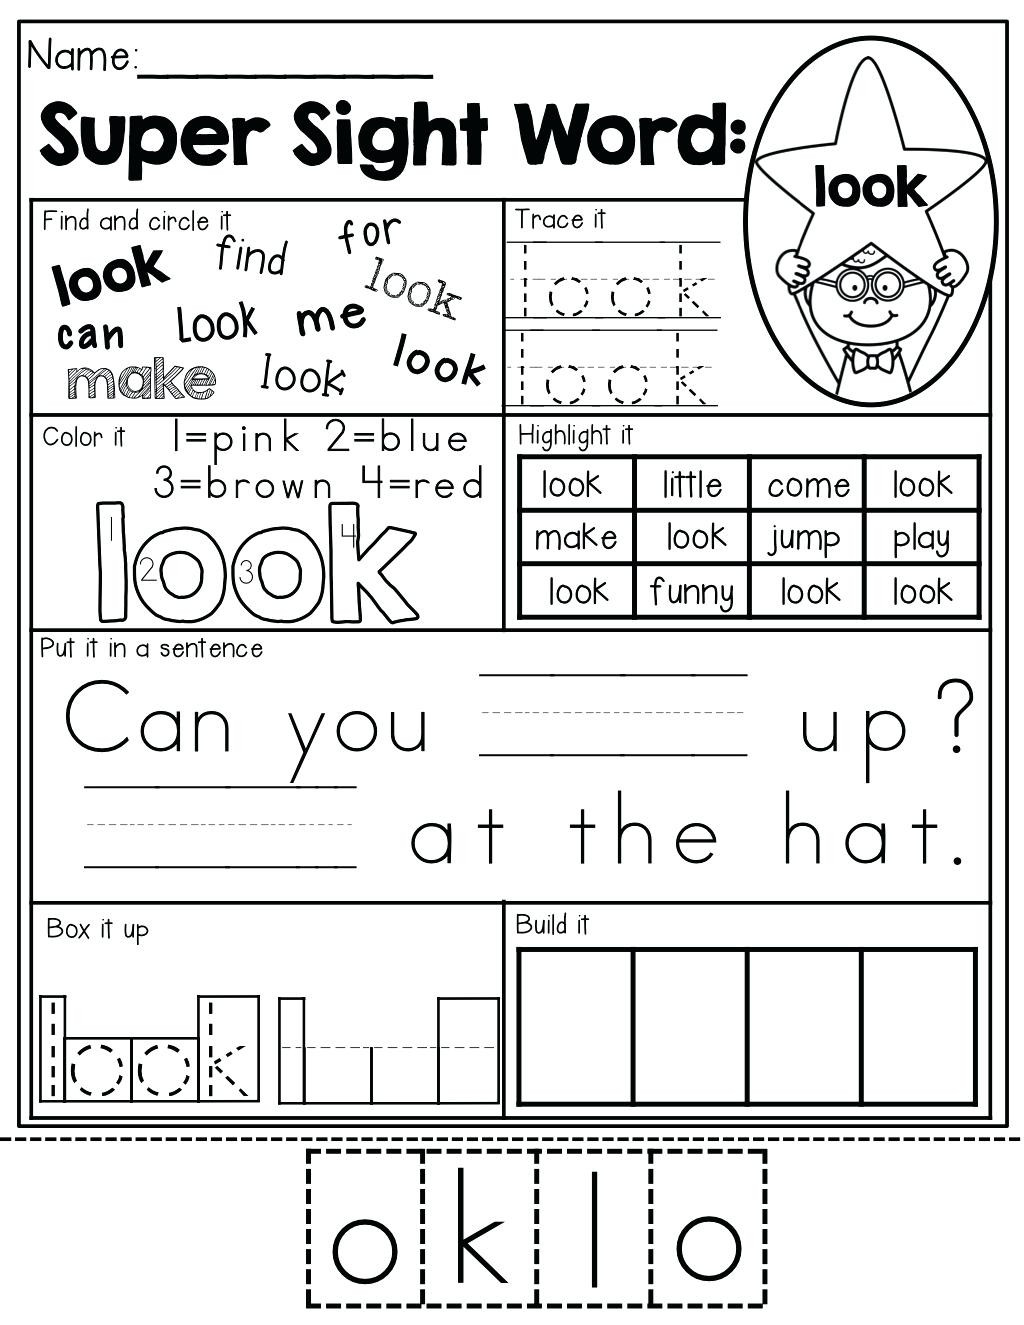 2nd Grade Sight Word Worksheets 1st Grade Worksheet Sight Words for Free Download 1st Grade